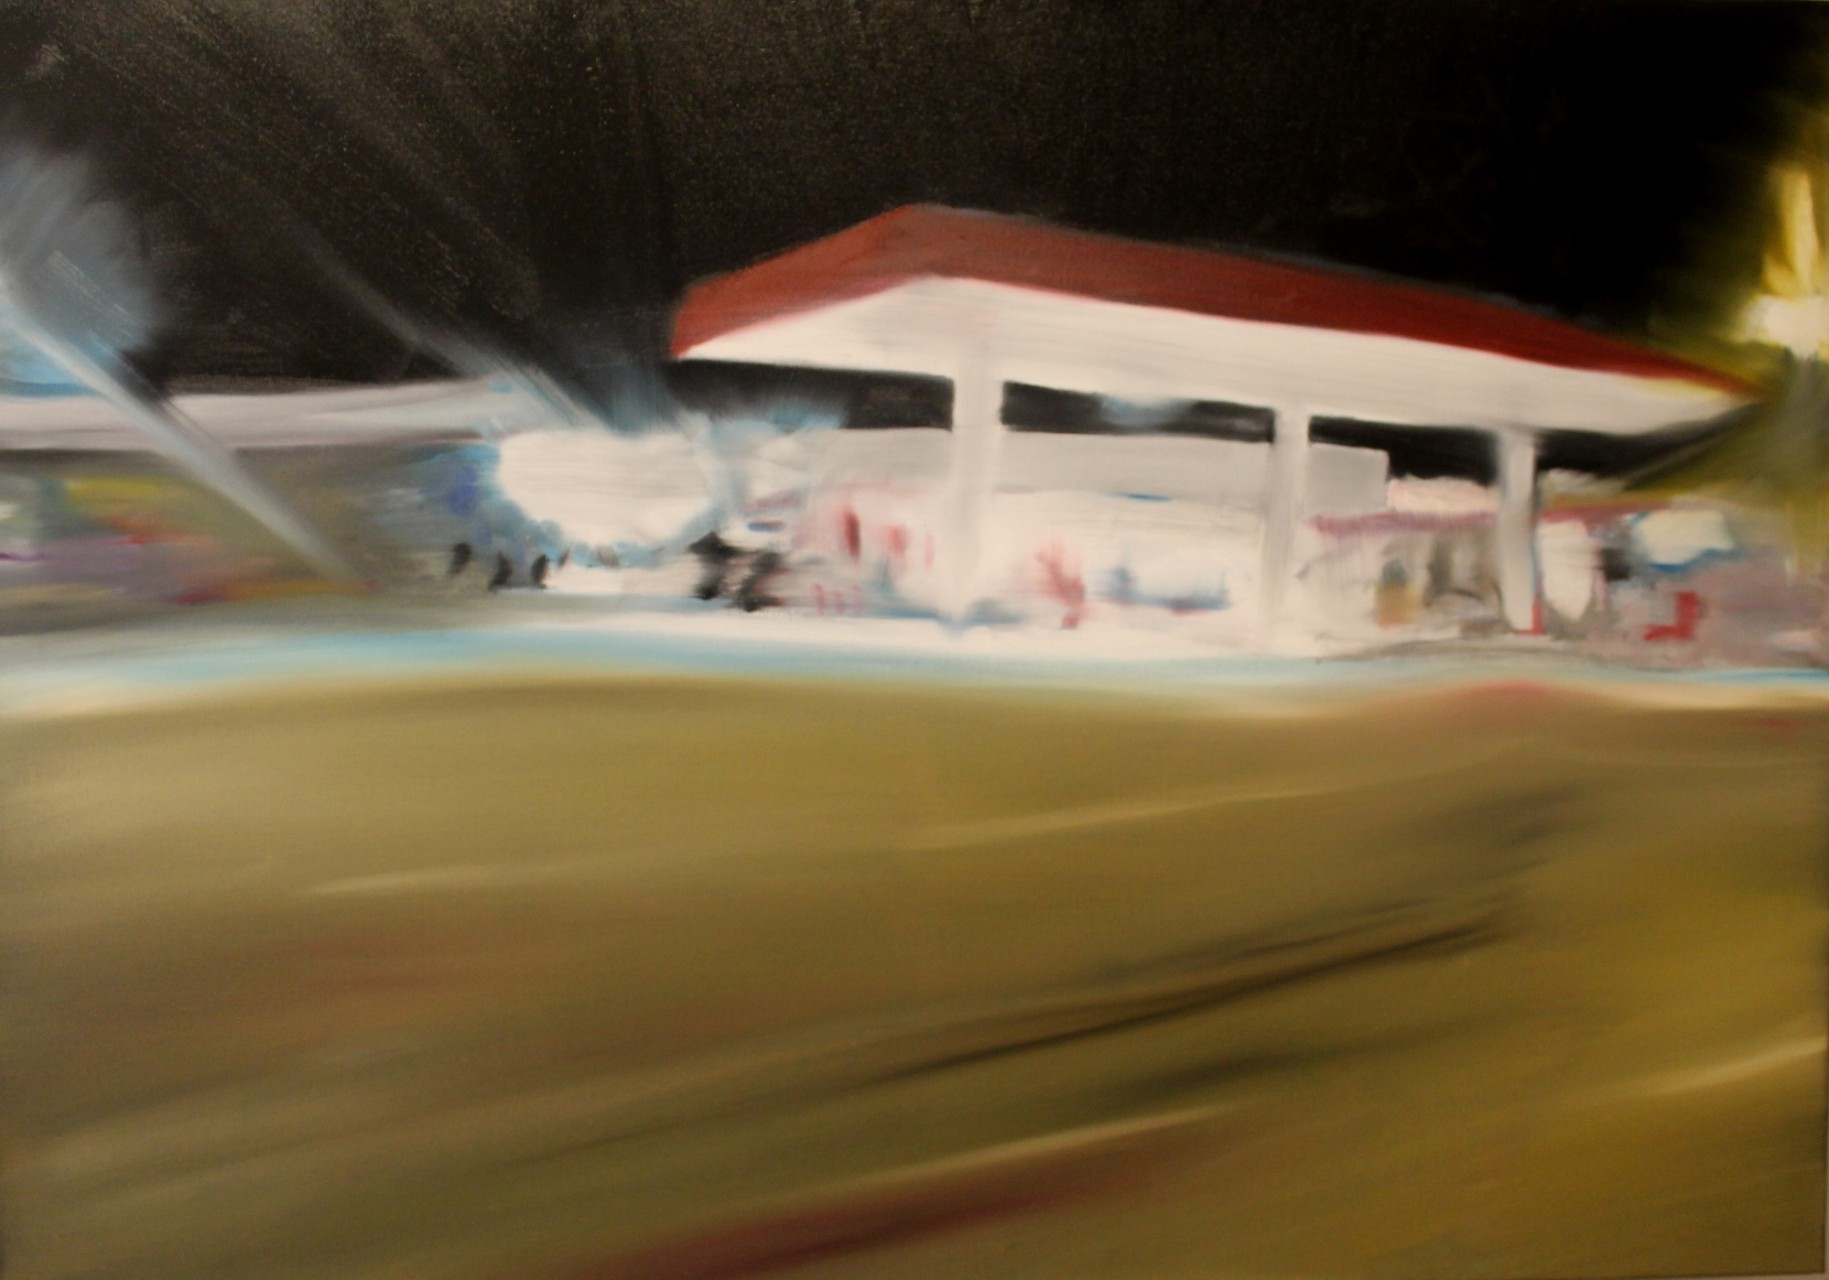 Rundu Gas Station, 2014, oil on canvas, 70 x 100 cm